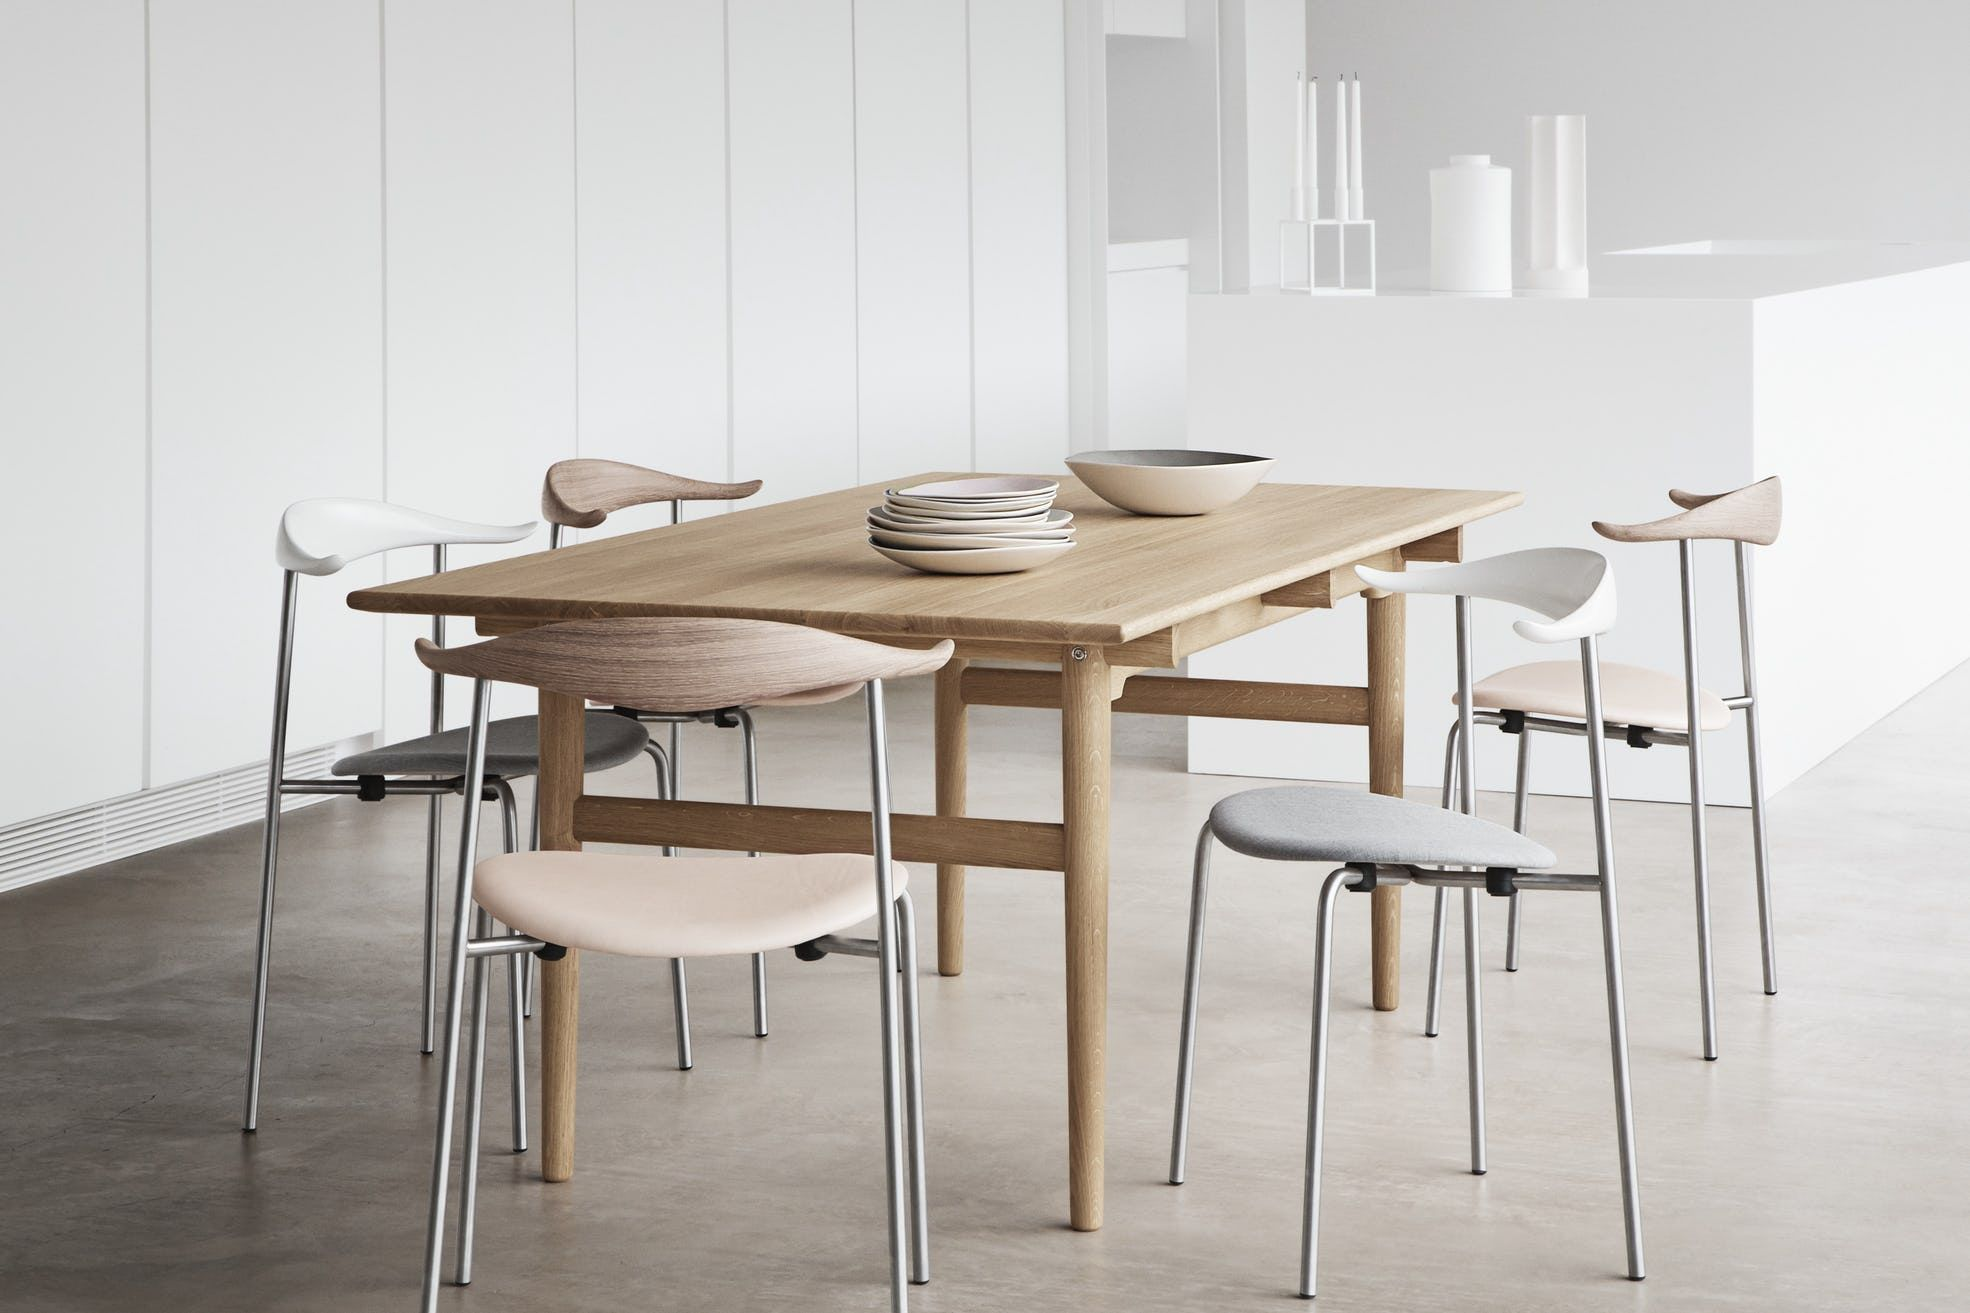 Ch327 Dining Table By Carl Hansen Son Now Available At Haute